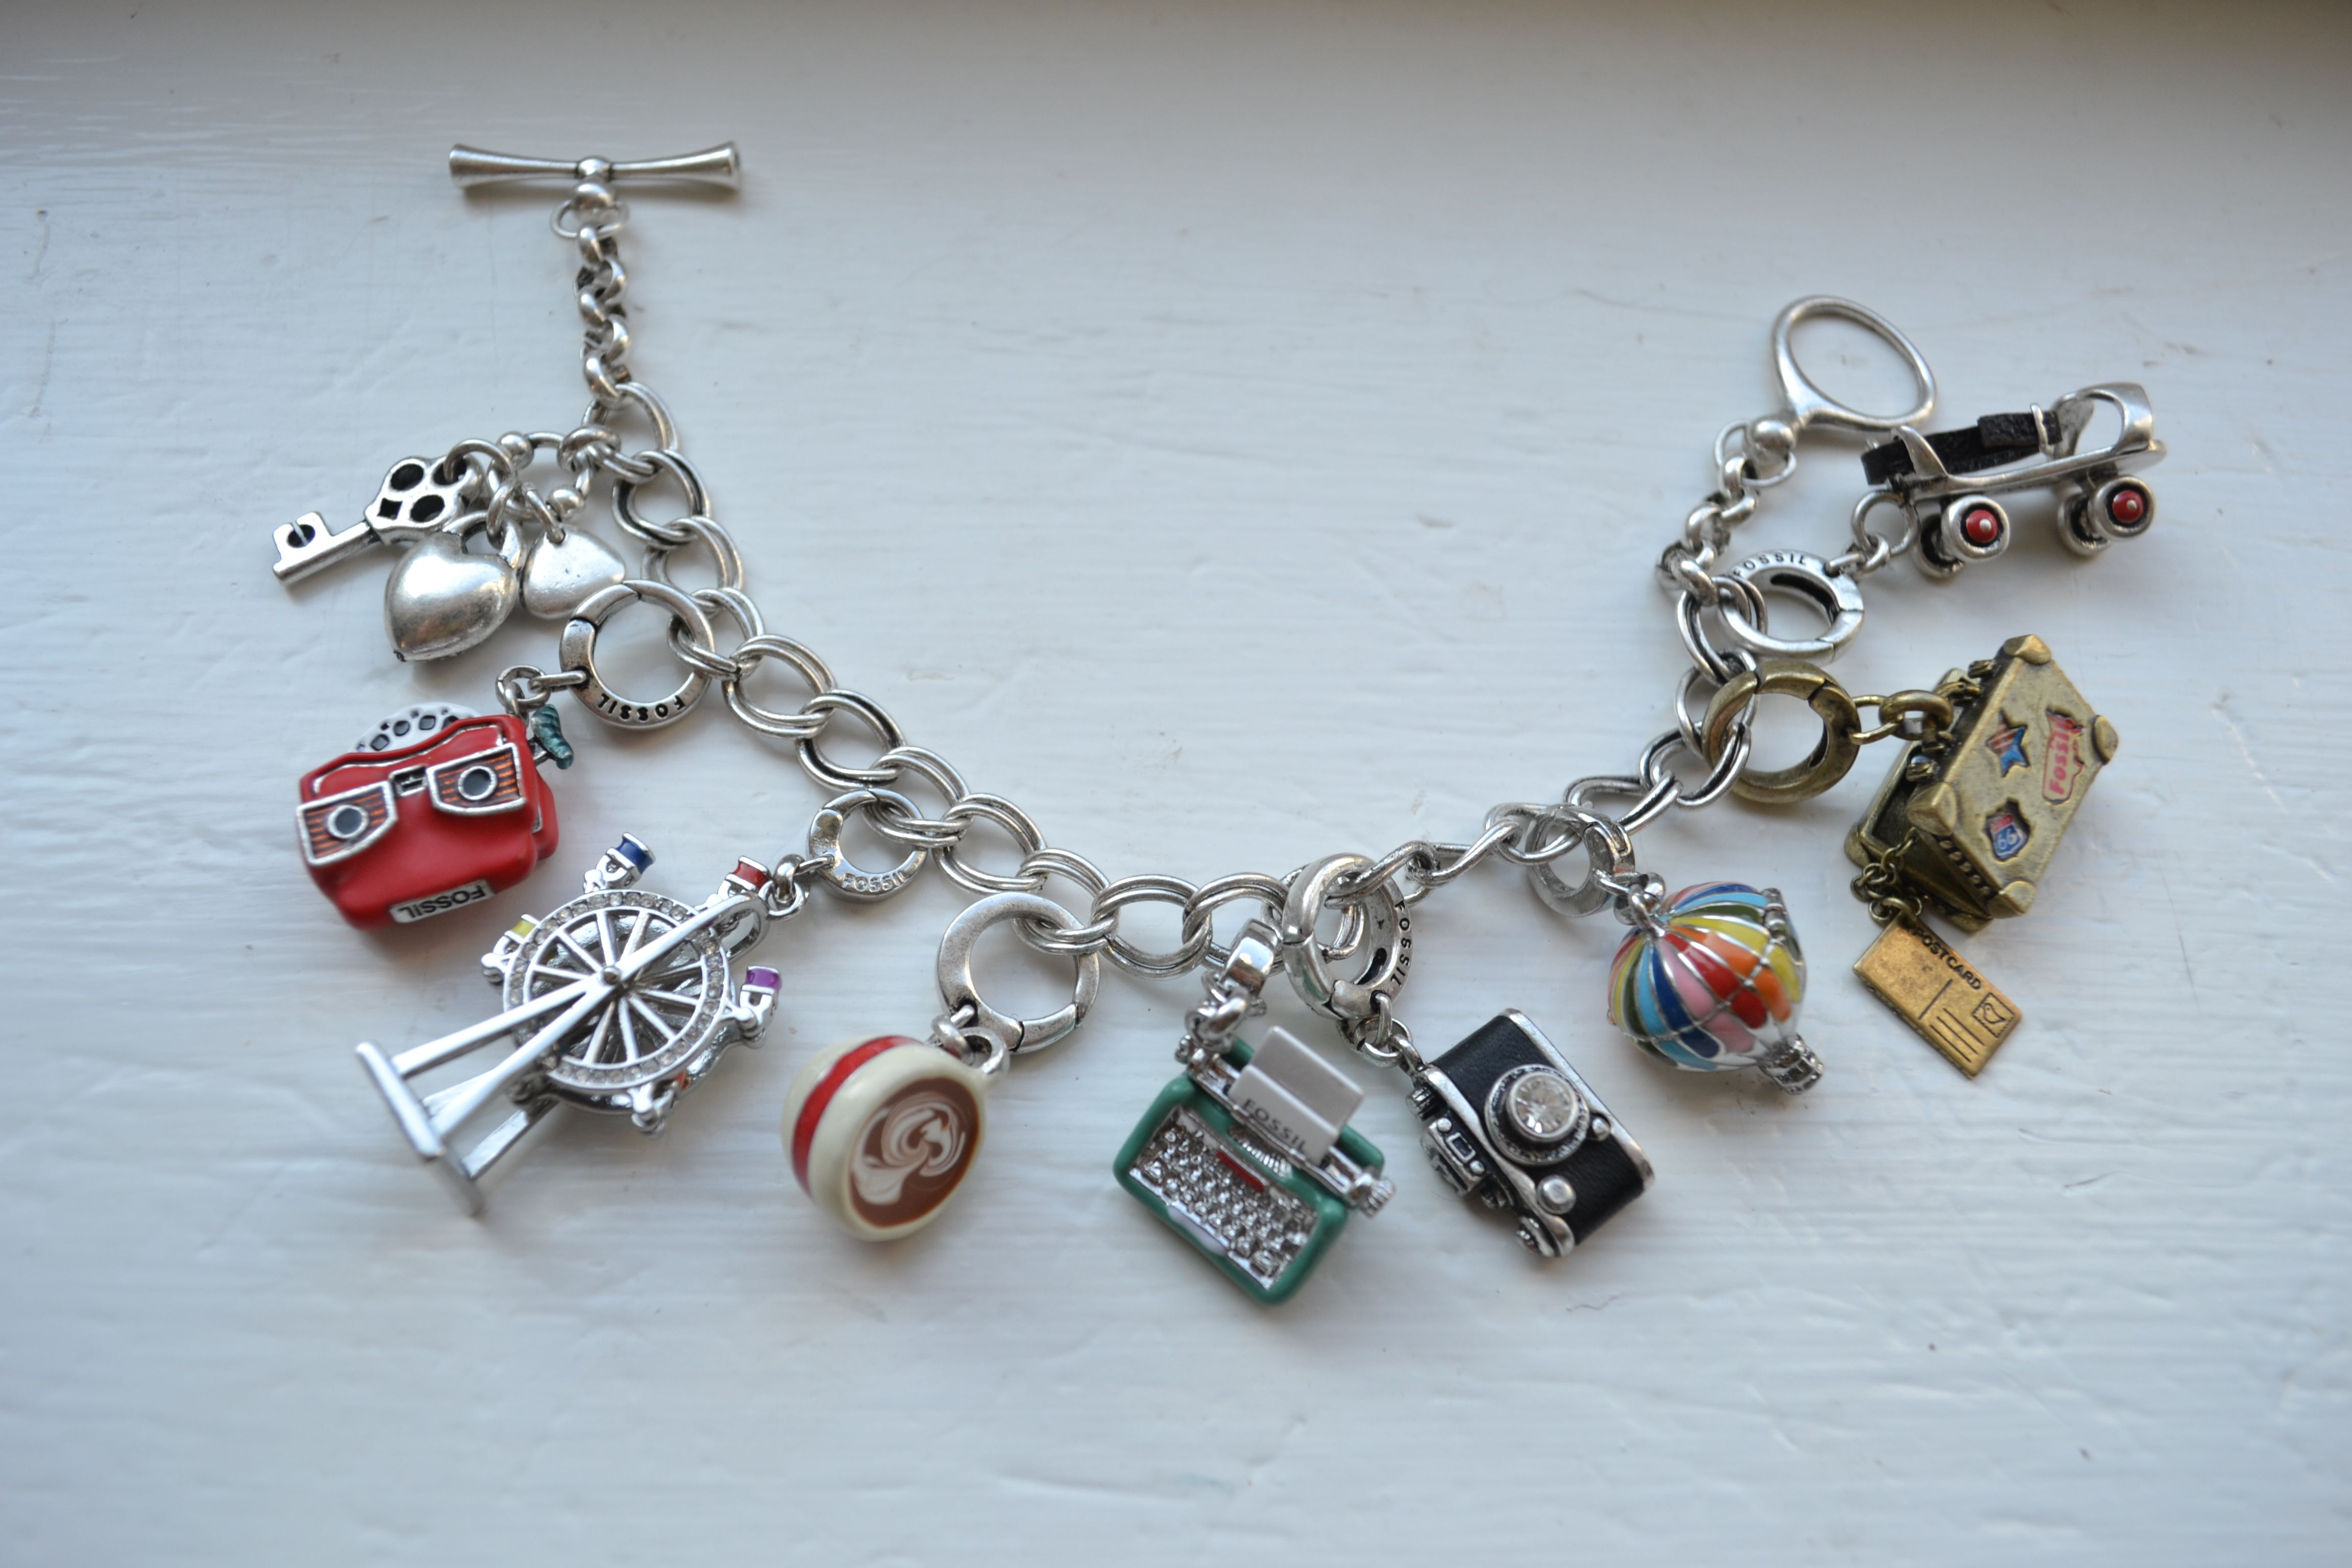 ee47fd3d3 Vintage Fossil charm bracelet | Things I like in 2019 | Charm ...